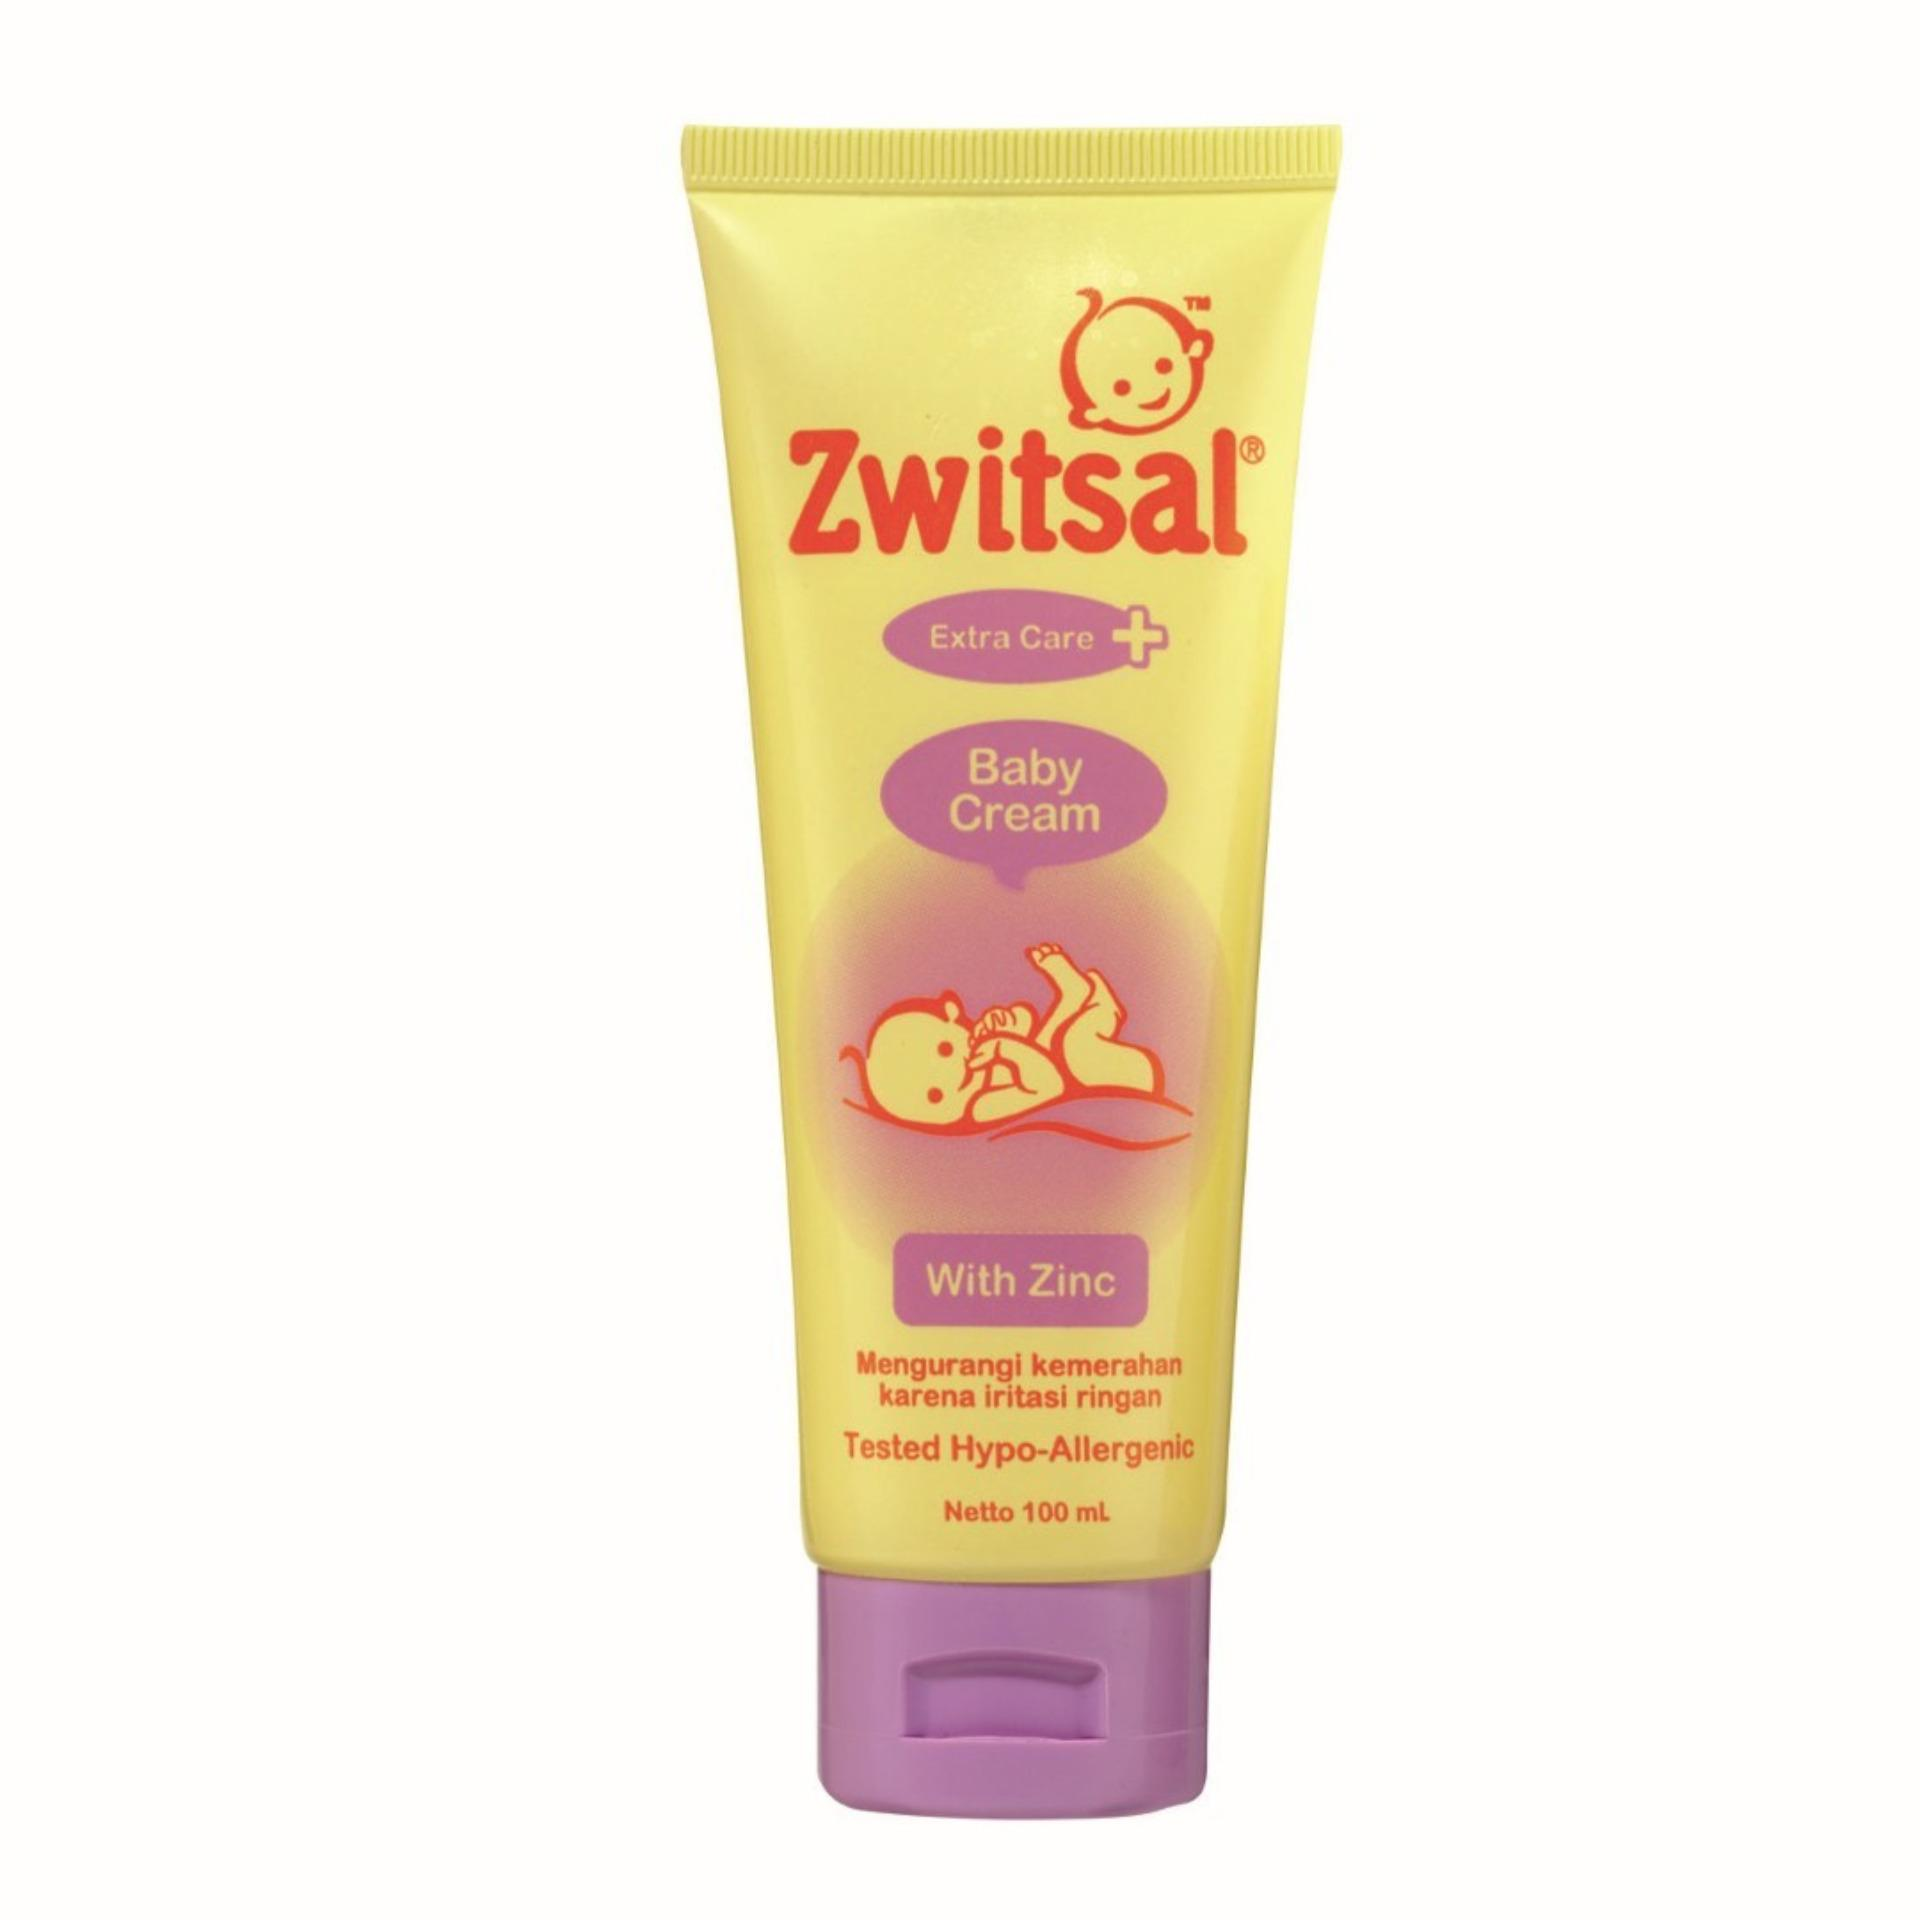 Penawaran Zwitsal Baby Bath Natural Hair Body 2in1 200 Ml Sabun Bayi Lotion Classic 200ml Cream With Zinc 100ml Zbb032